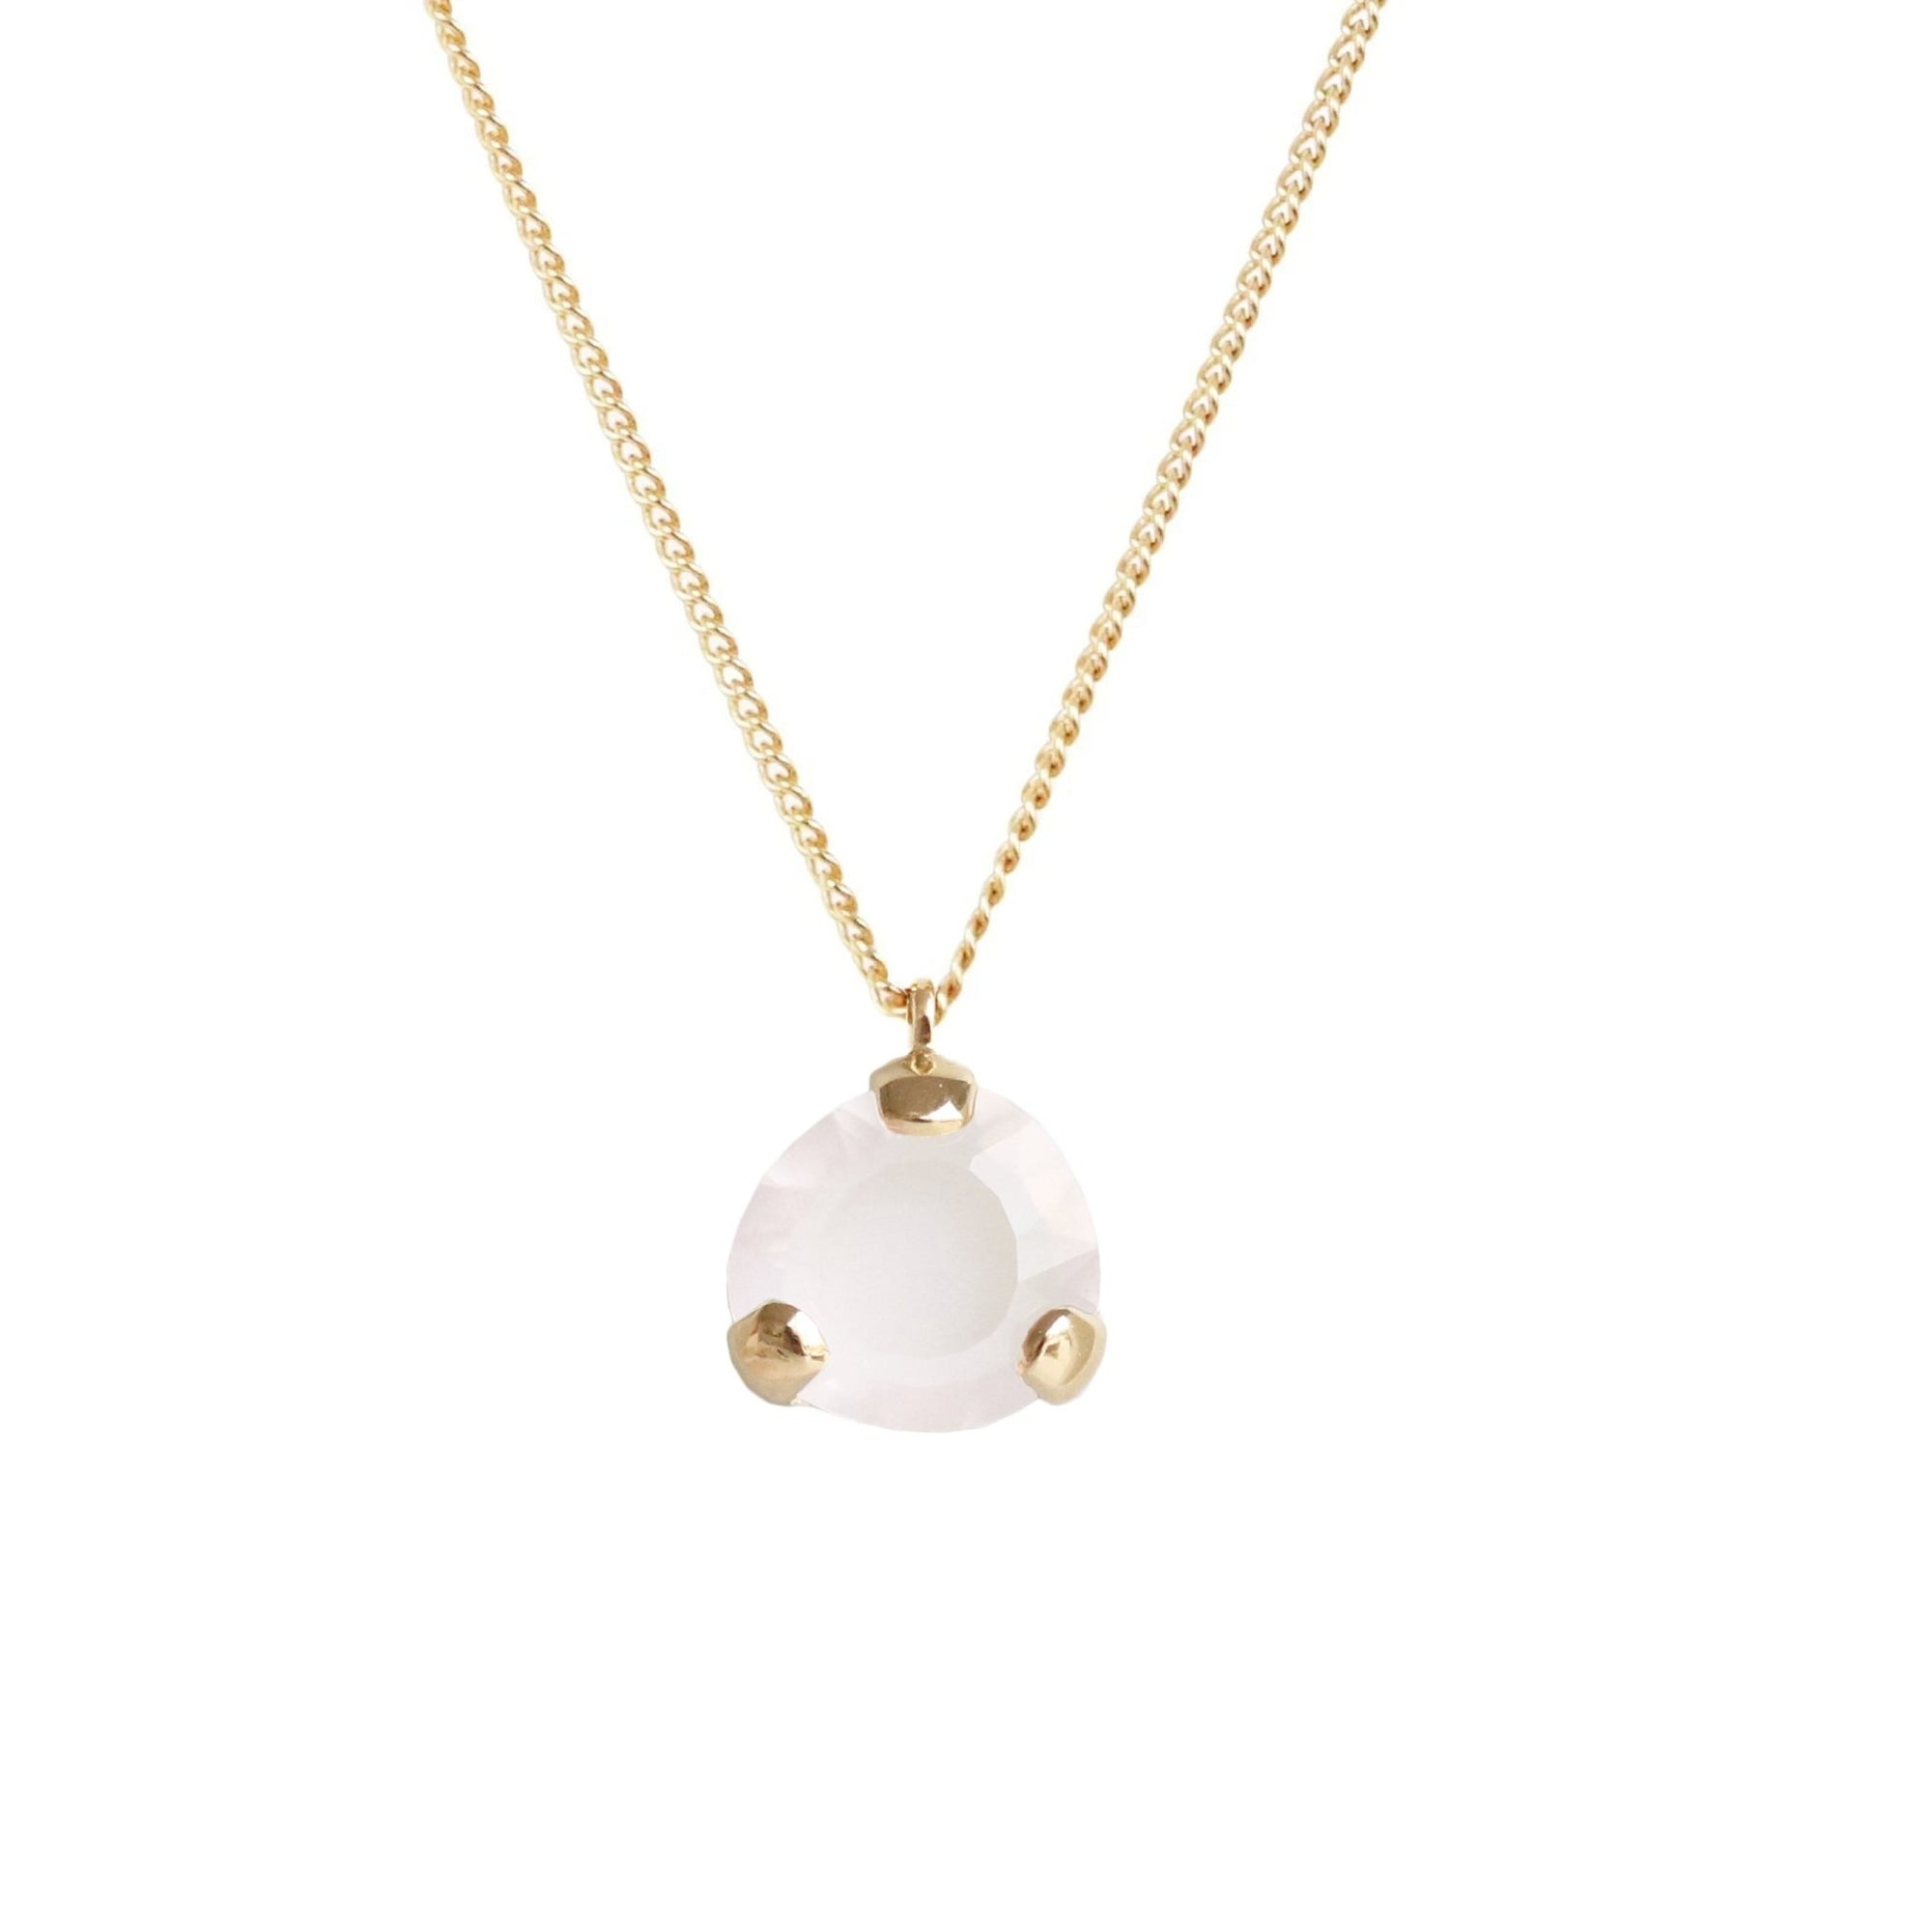 Fearless Mini Pendant Necklace - Rainbow Moonstone & Gold - SO PRETTY CARA COTTER